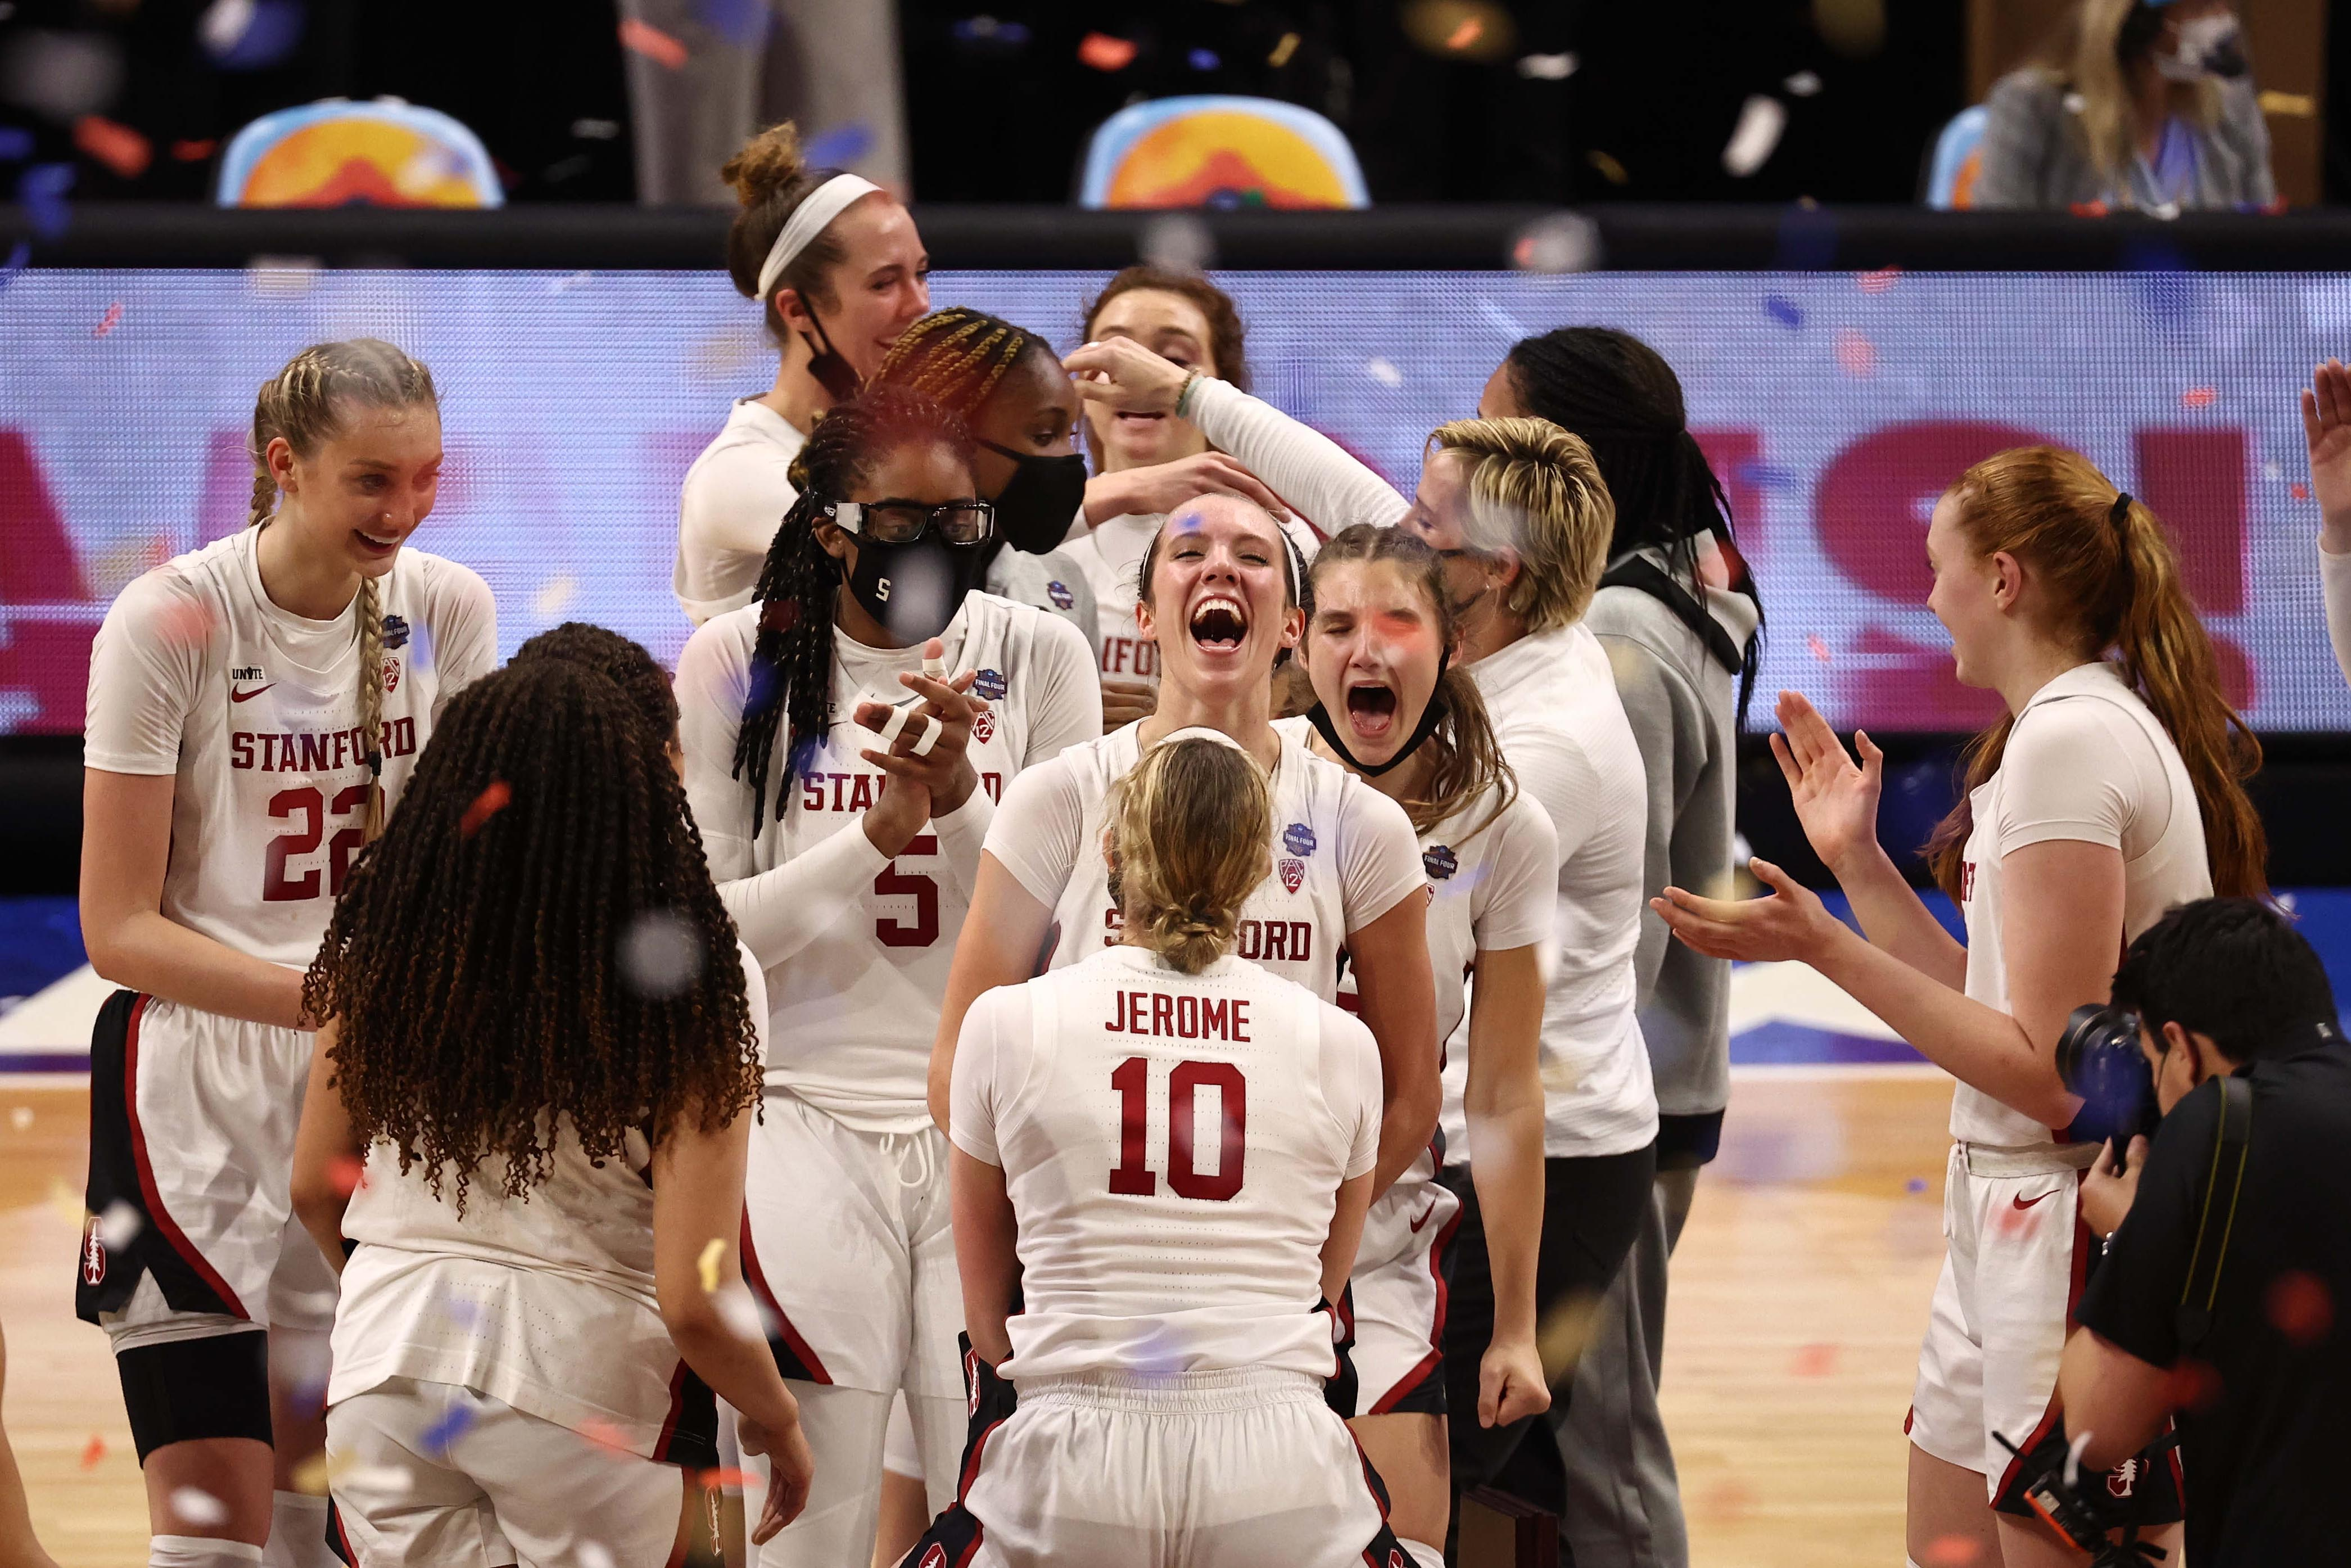 NCAA women's basketball could see changes to tournament, branding